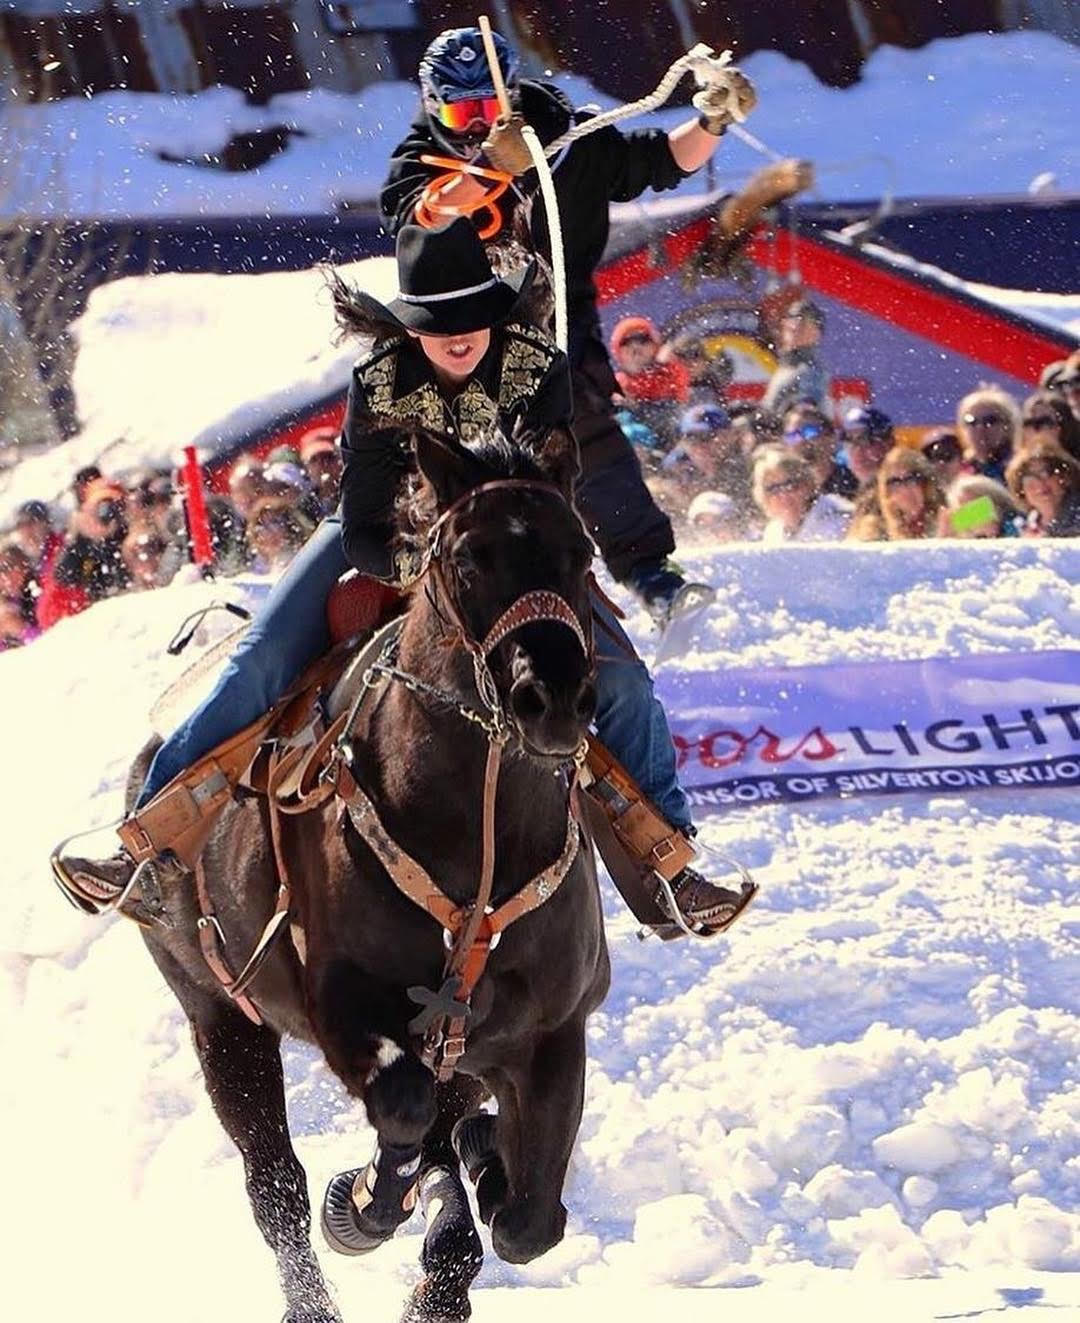 Skijoring: The West's Rising Star